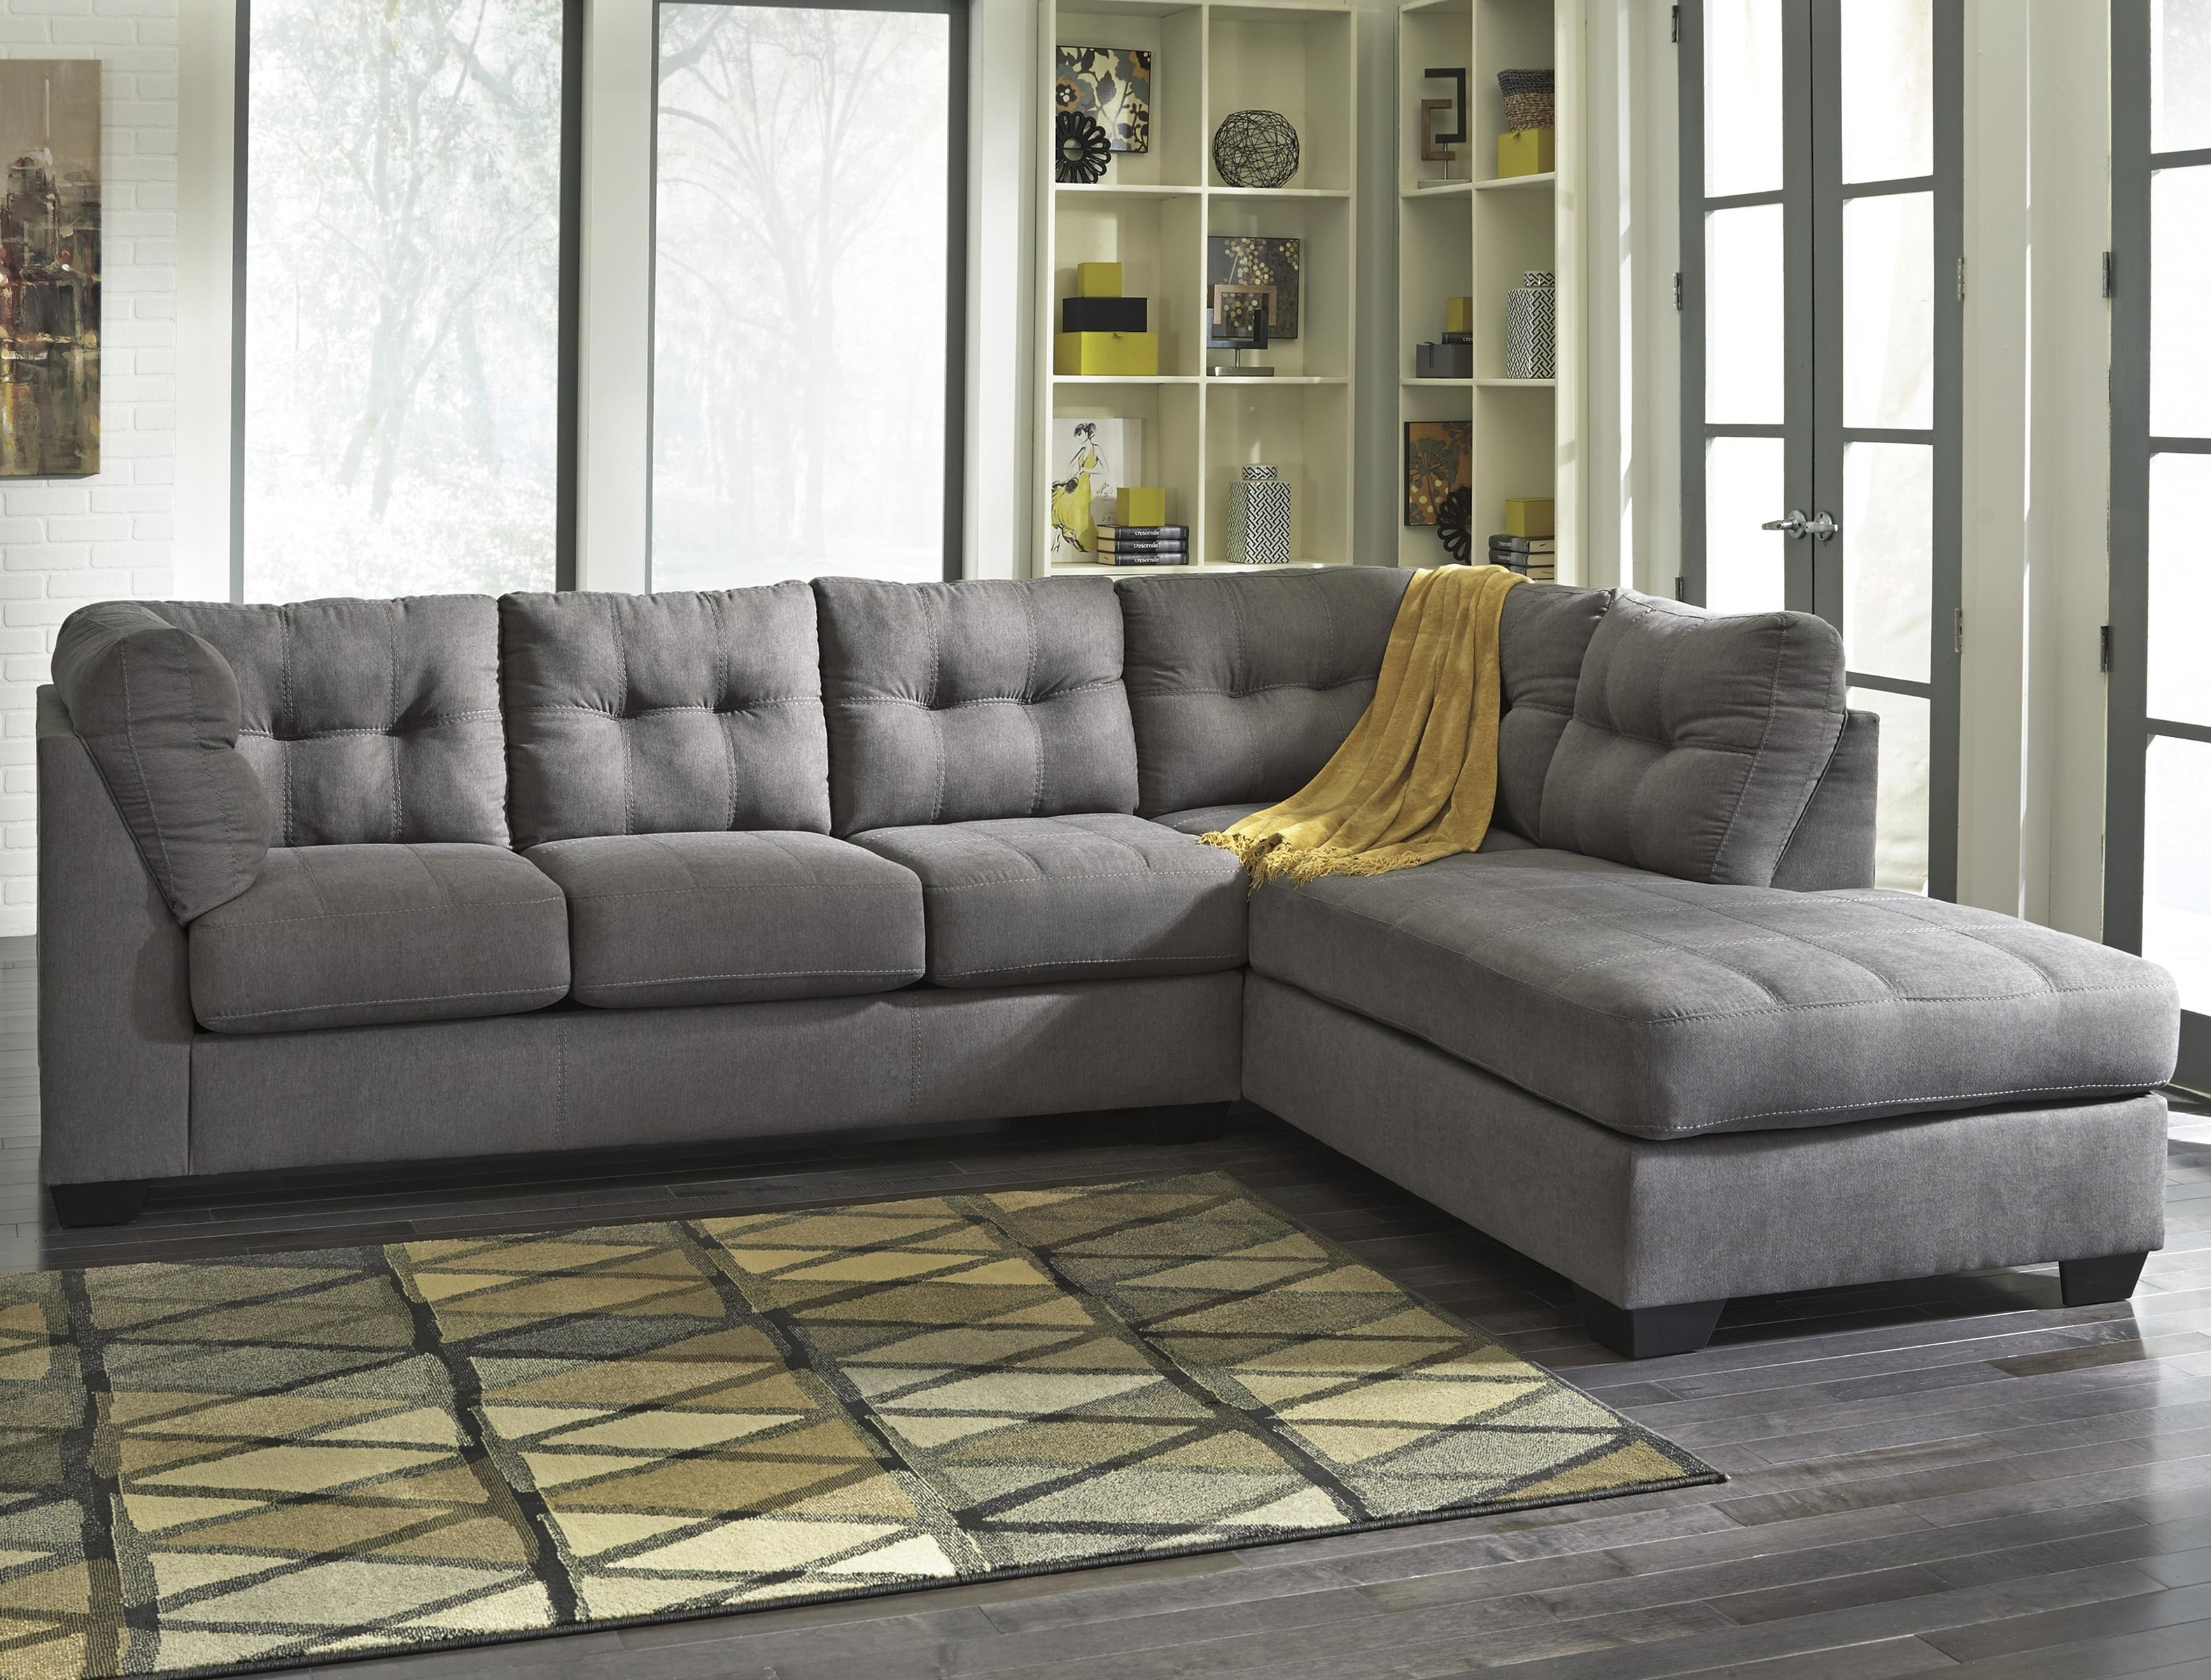 3 Piece Sectional Sleeper Sofa – Hotelsbacau In 3 Piece Sectional Sleeper Sofas (Photo 4 of 10)